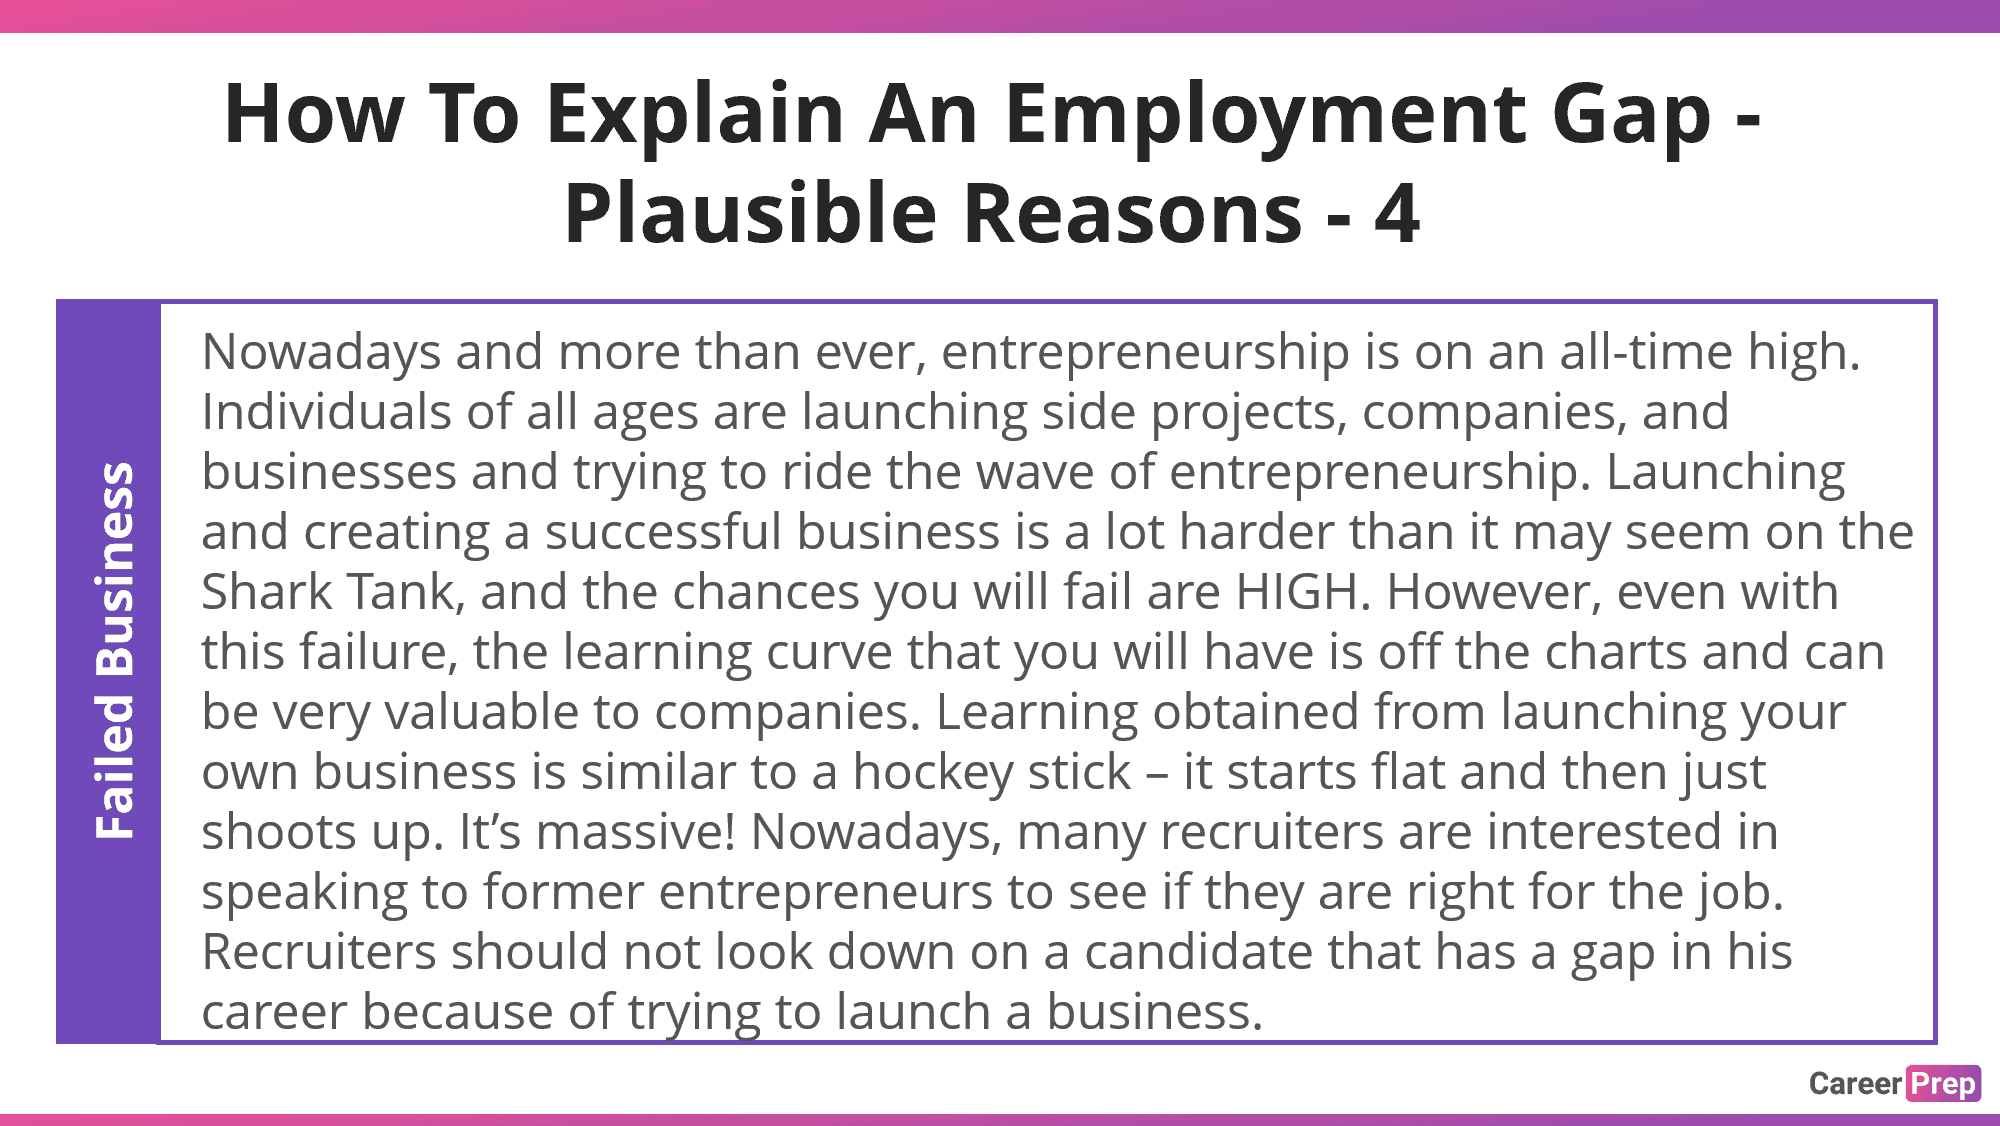 explain employment gap with a failed business attempt